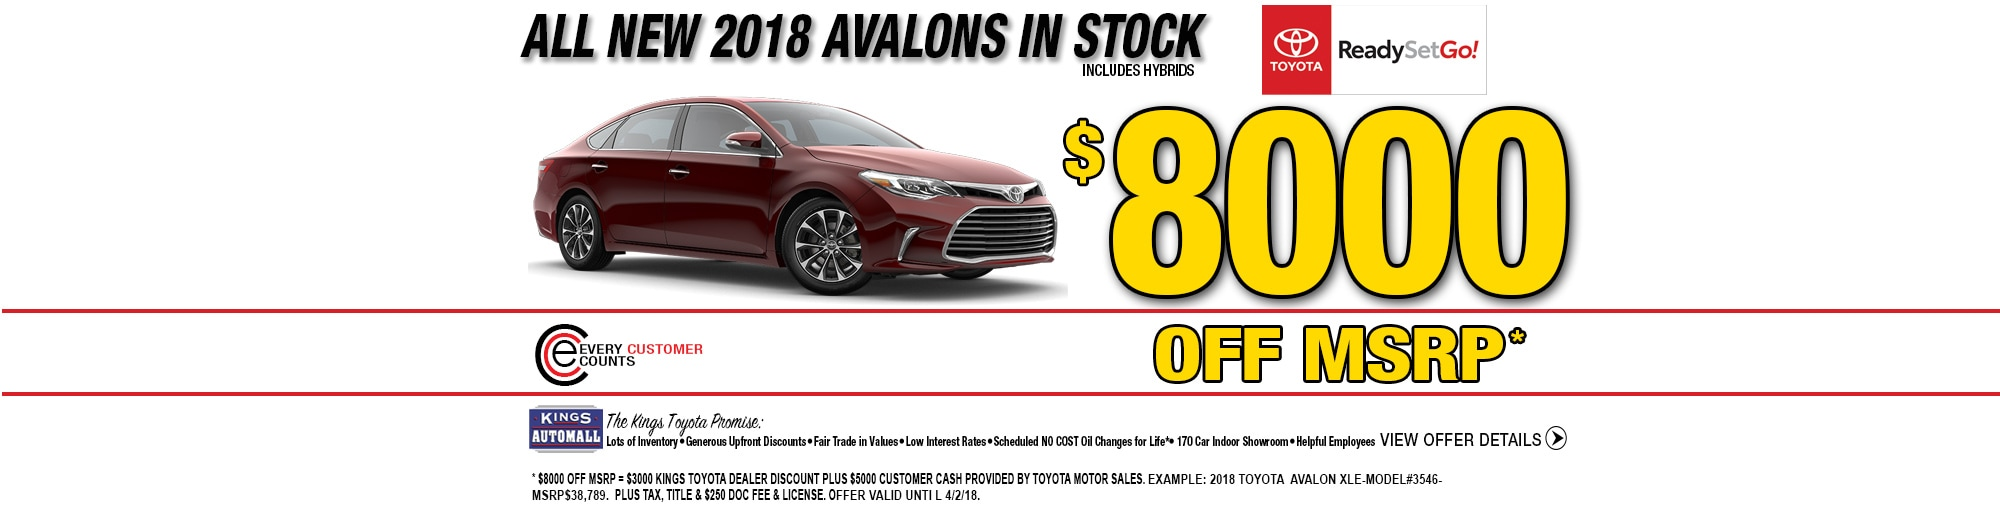 New Used Cars For Sale At Kings Toyota In Cincinnati - Toyota scion dealership near me